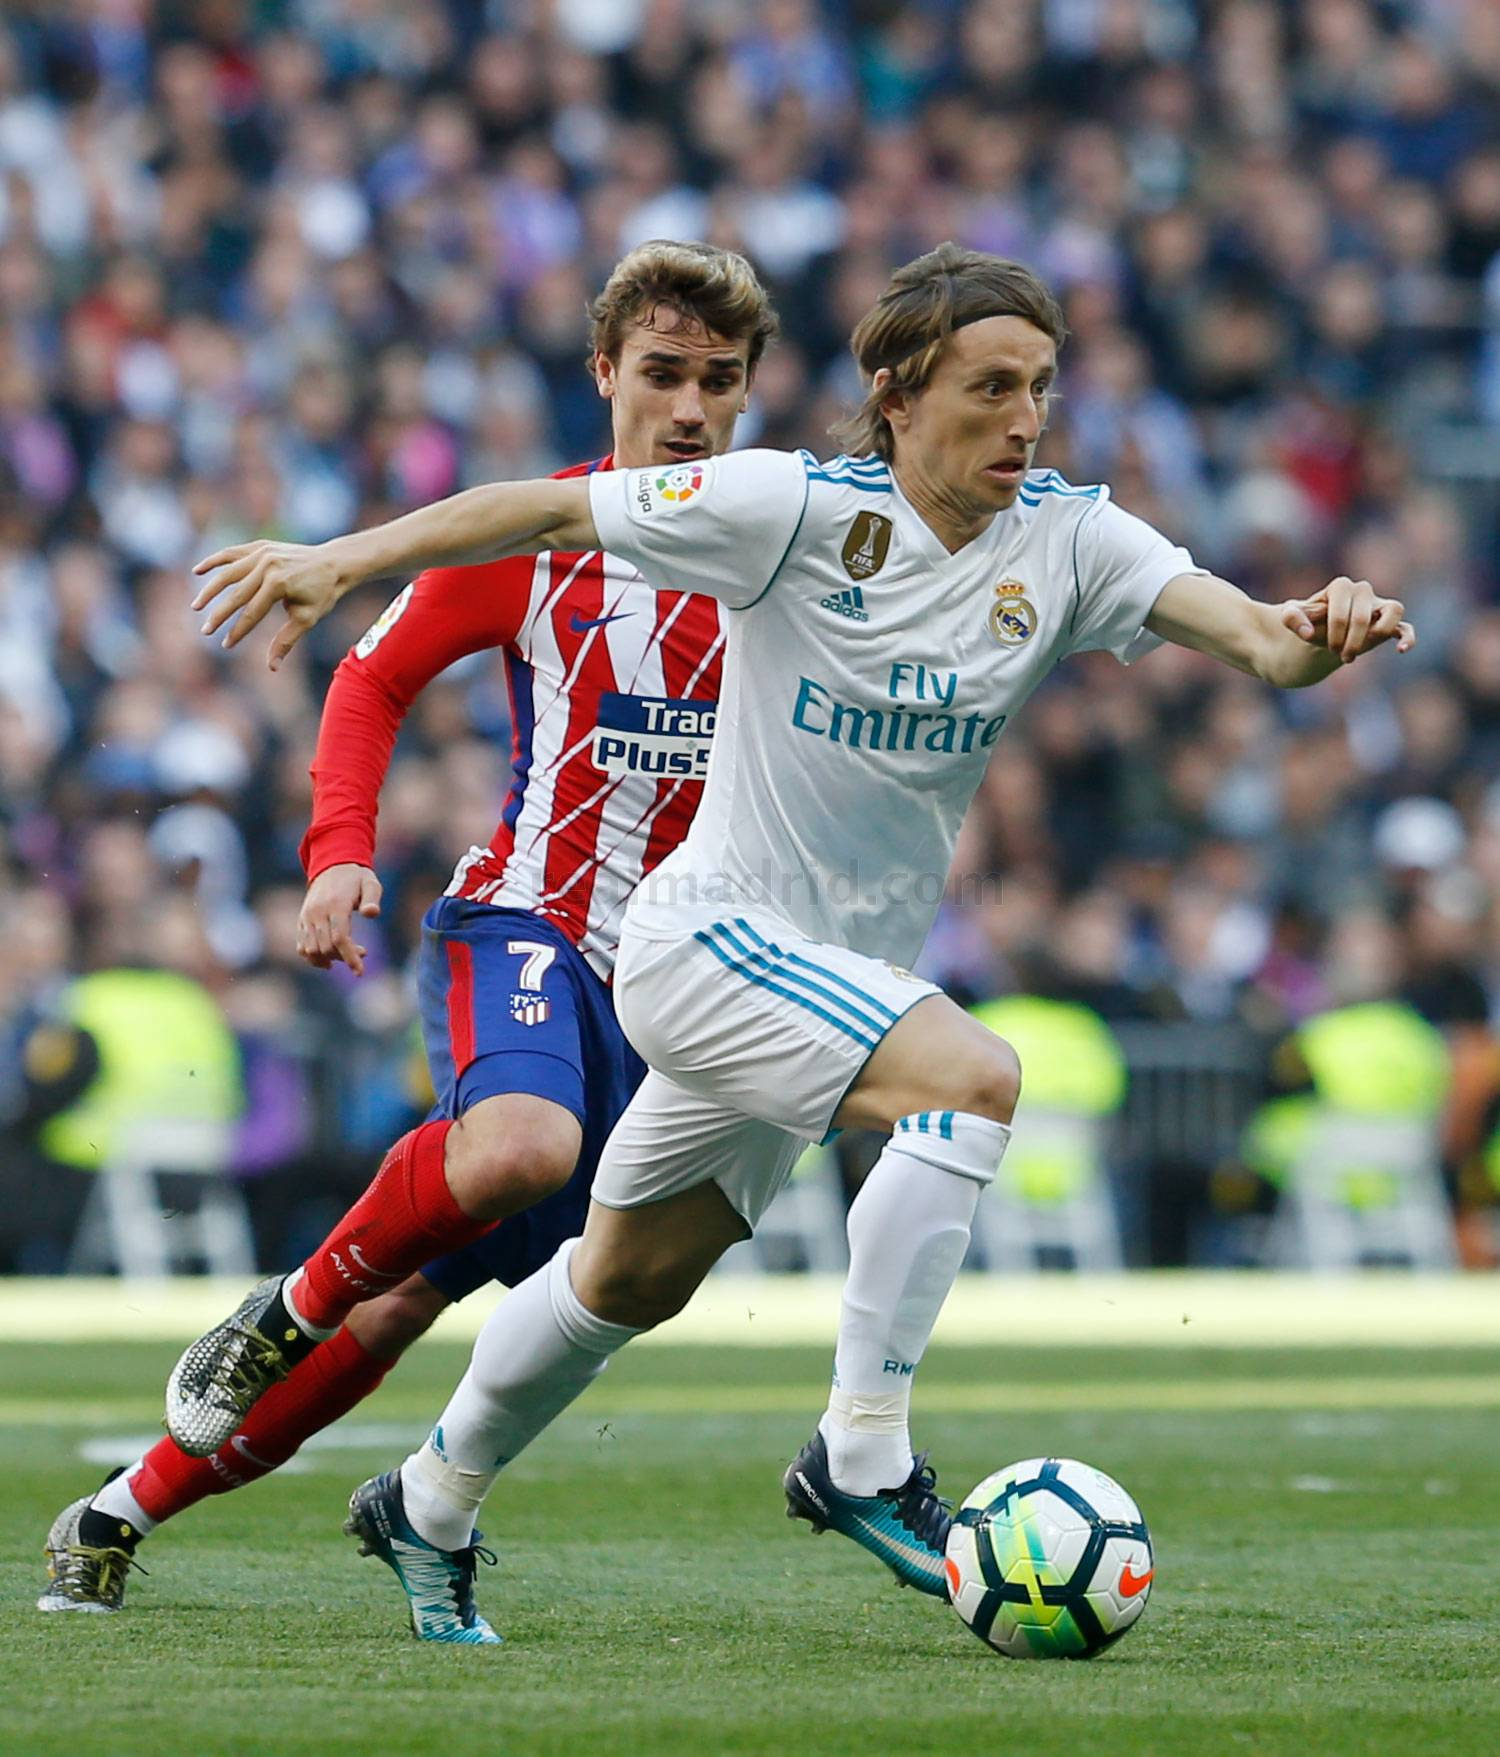 Real Madrid - Real Madrid - Atlético de Madrid - 08-04-2018